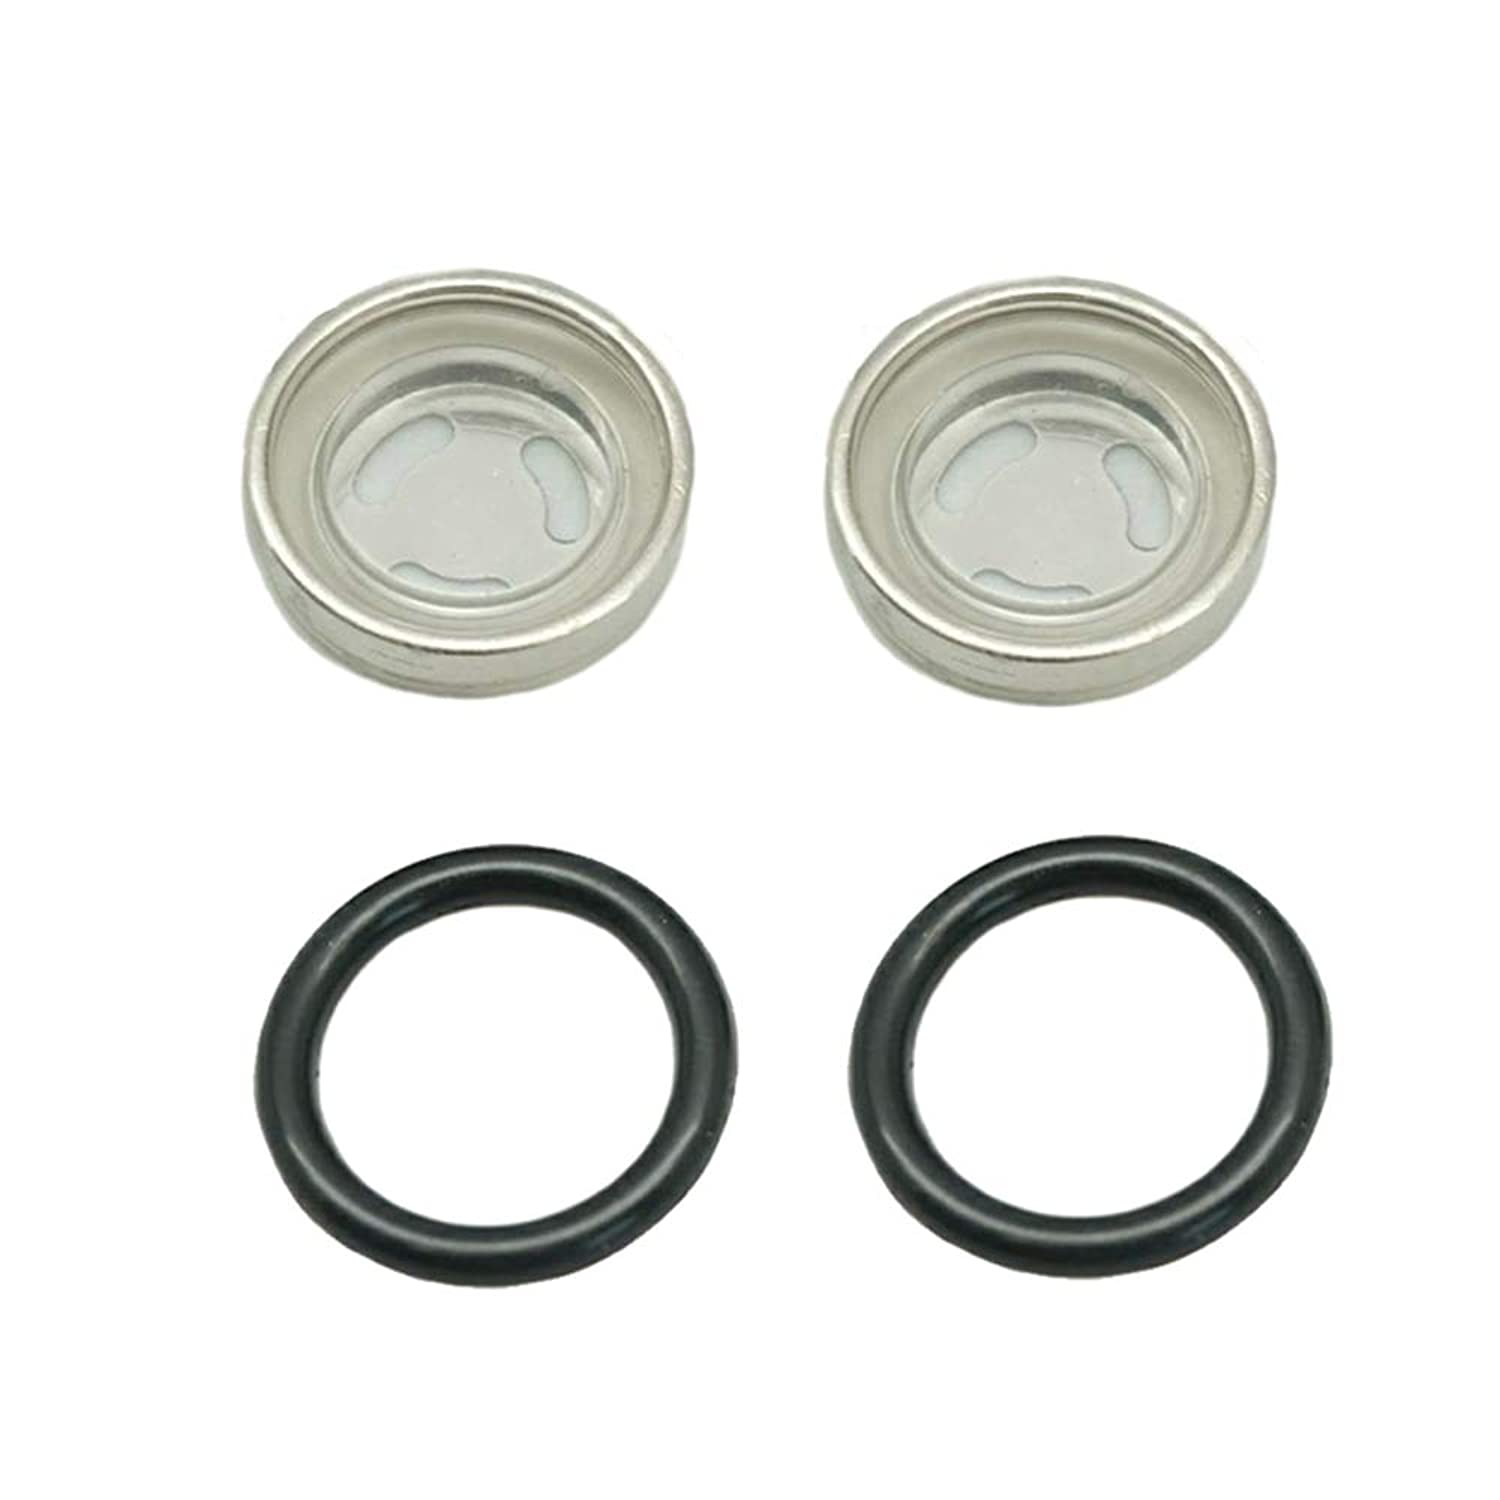 Lefossi 2 Sets Front Rear Brake Clutch Master Cylinder 18mm Sight Glass Lens with O Ring Replacement For 125cc 150cc 250cc 300cc 350cc 400cc 450cc Scooter Dirt Bike ATV